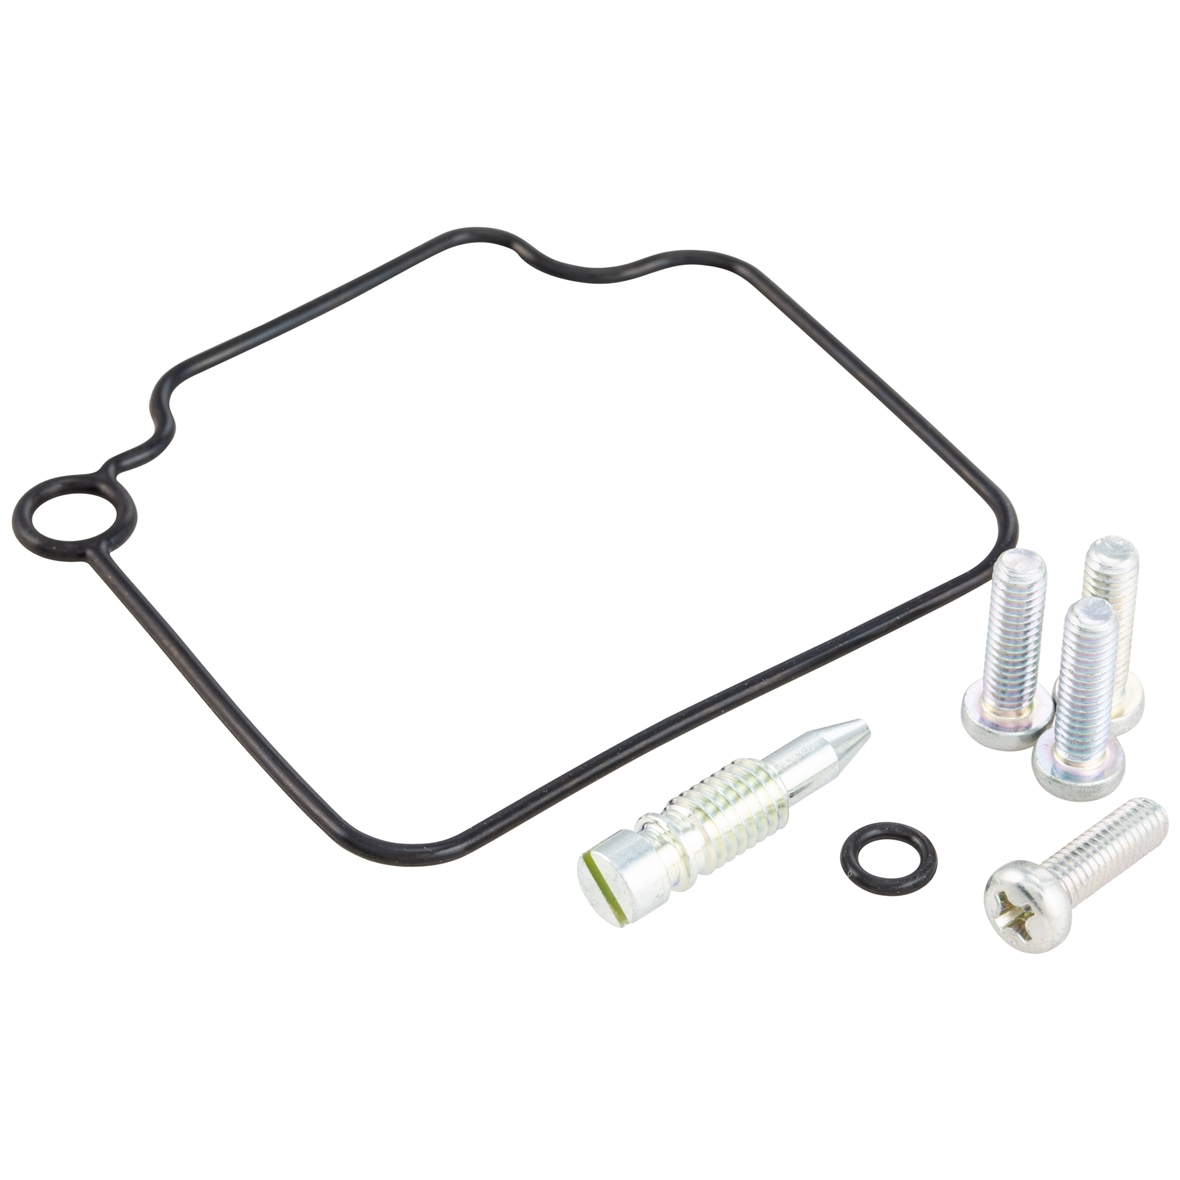 Product image for 'Gasket Set PIAGGIO float chamberTitle'